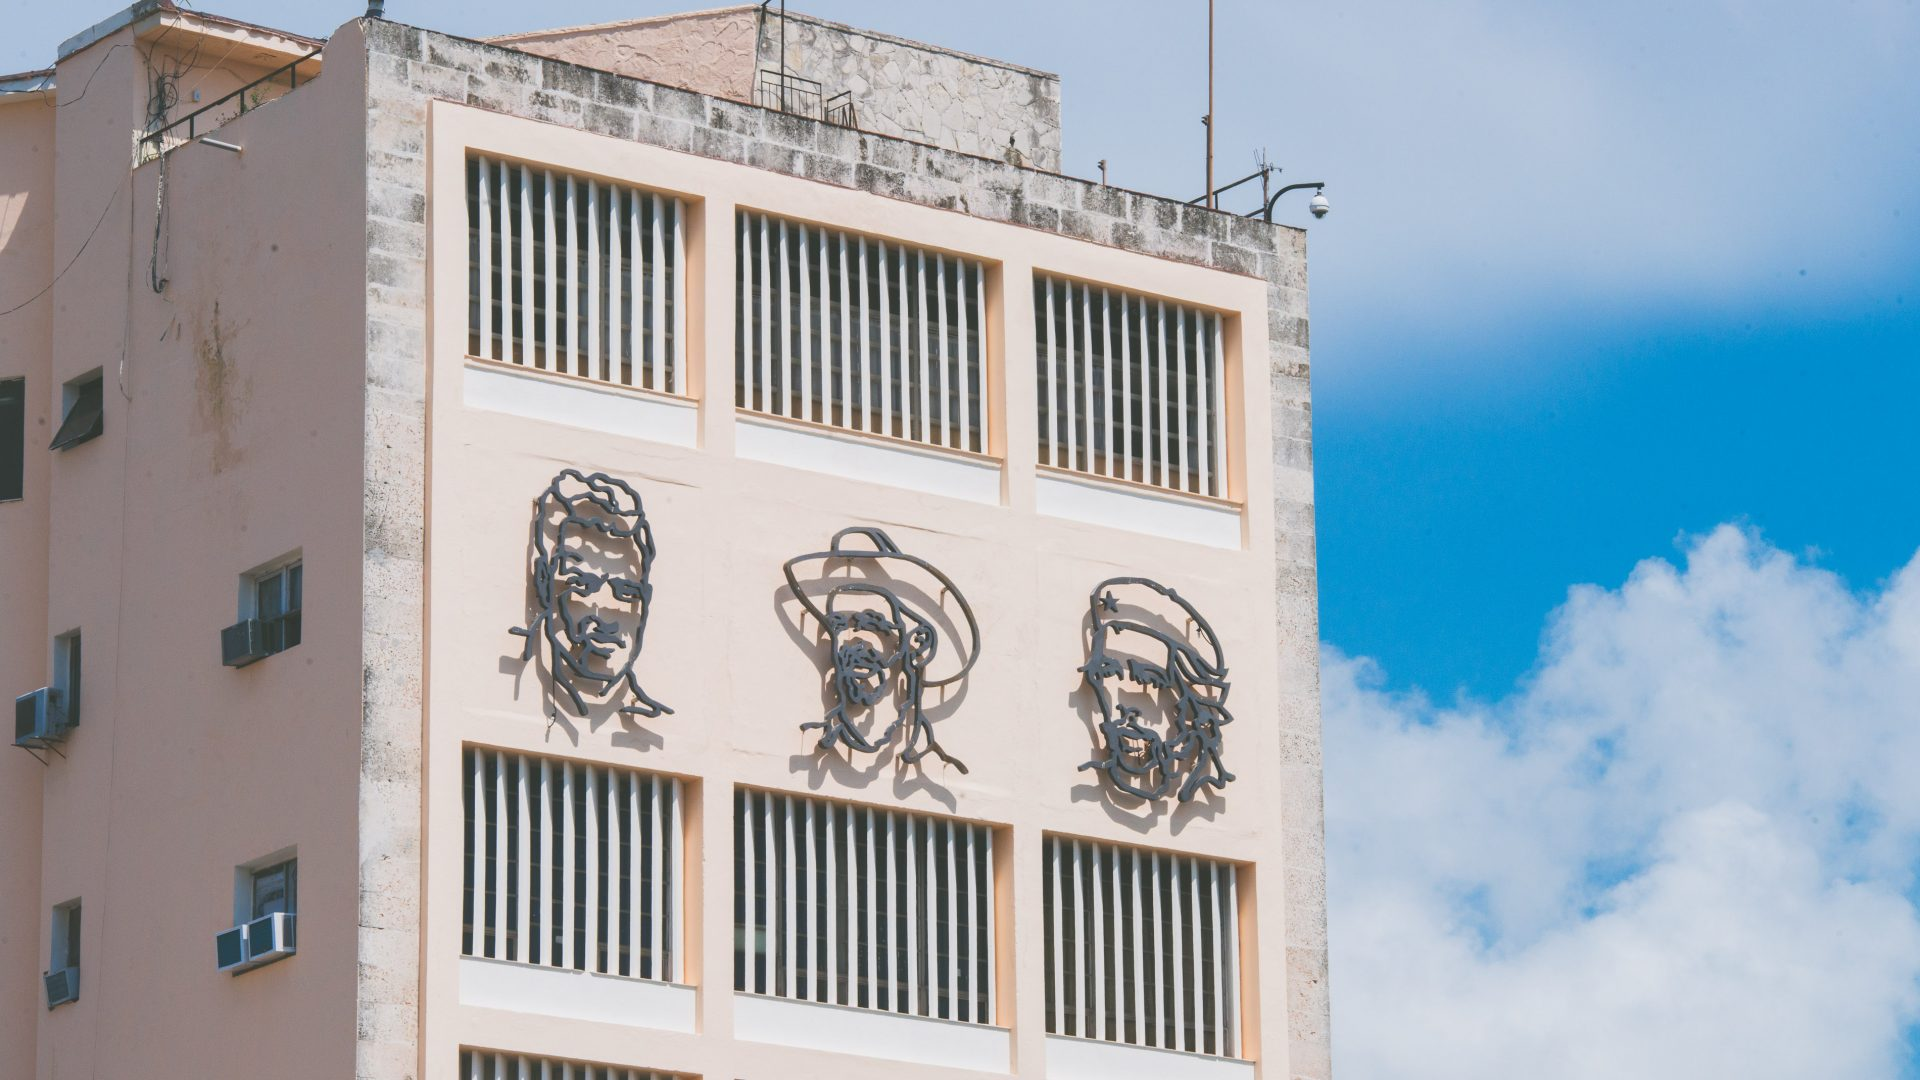 A building in Cuba shows the faces of Fidel, Che and Marti - recognized by many as revolutionaries.